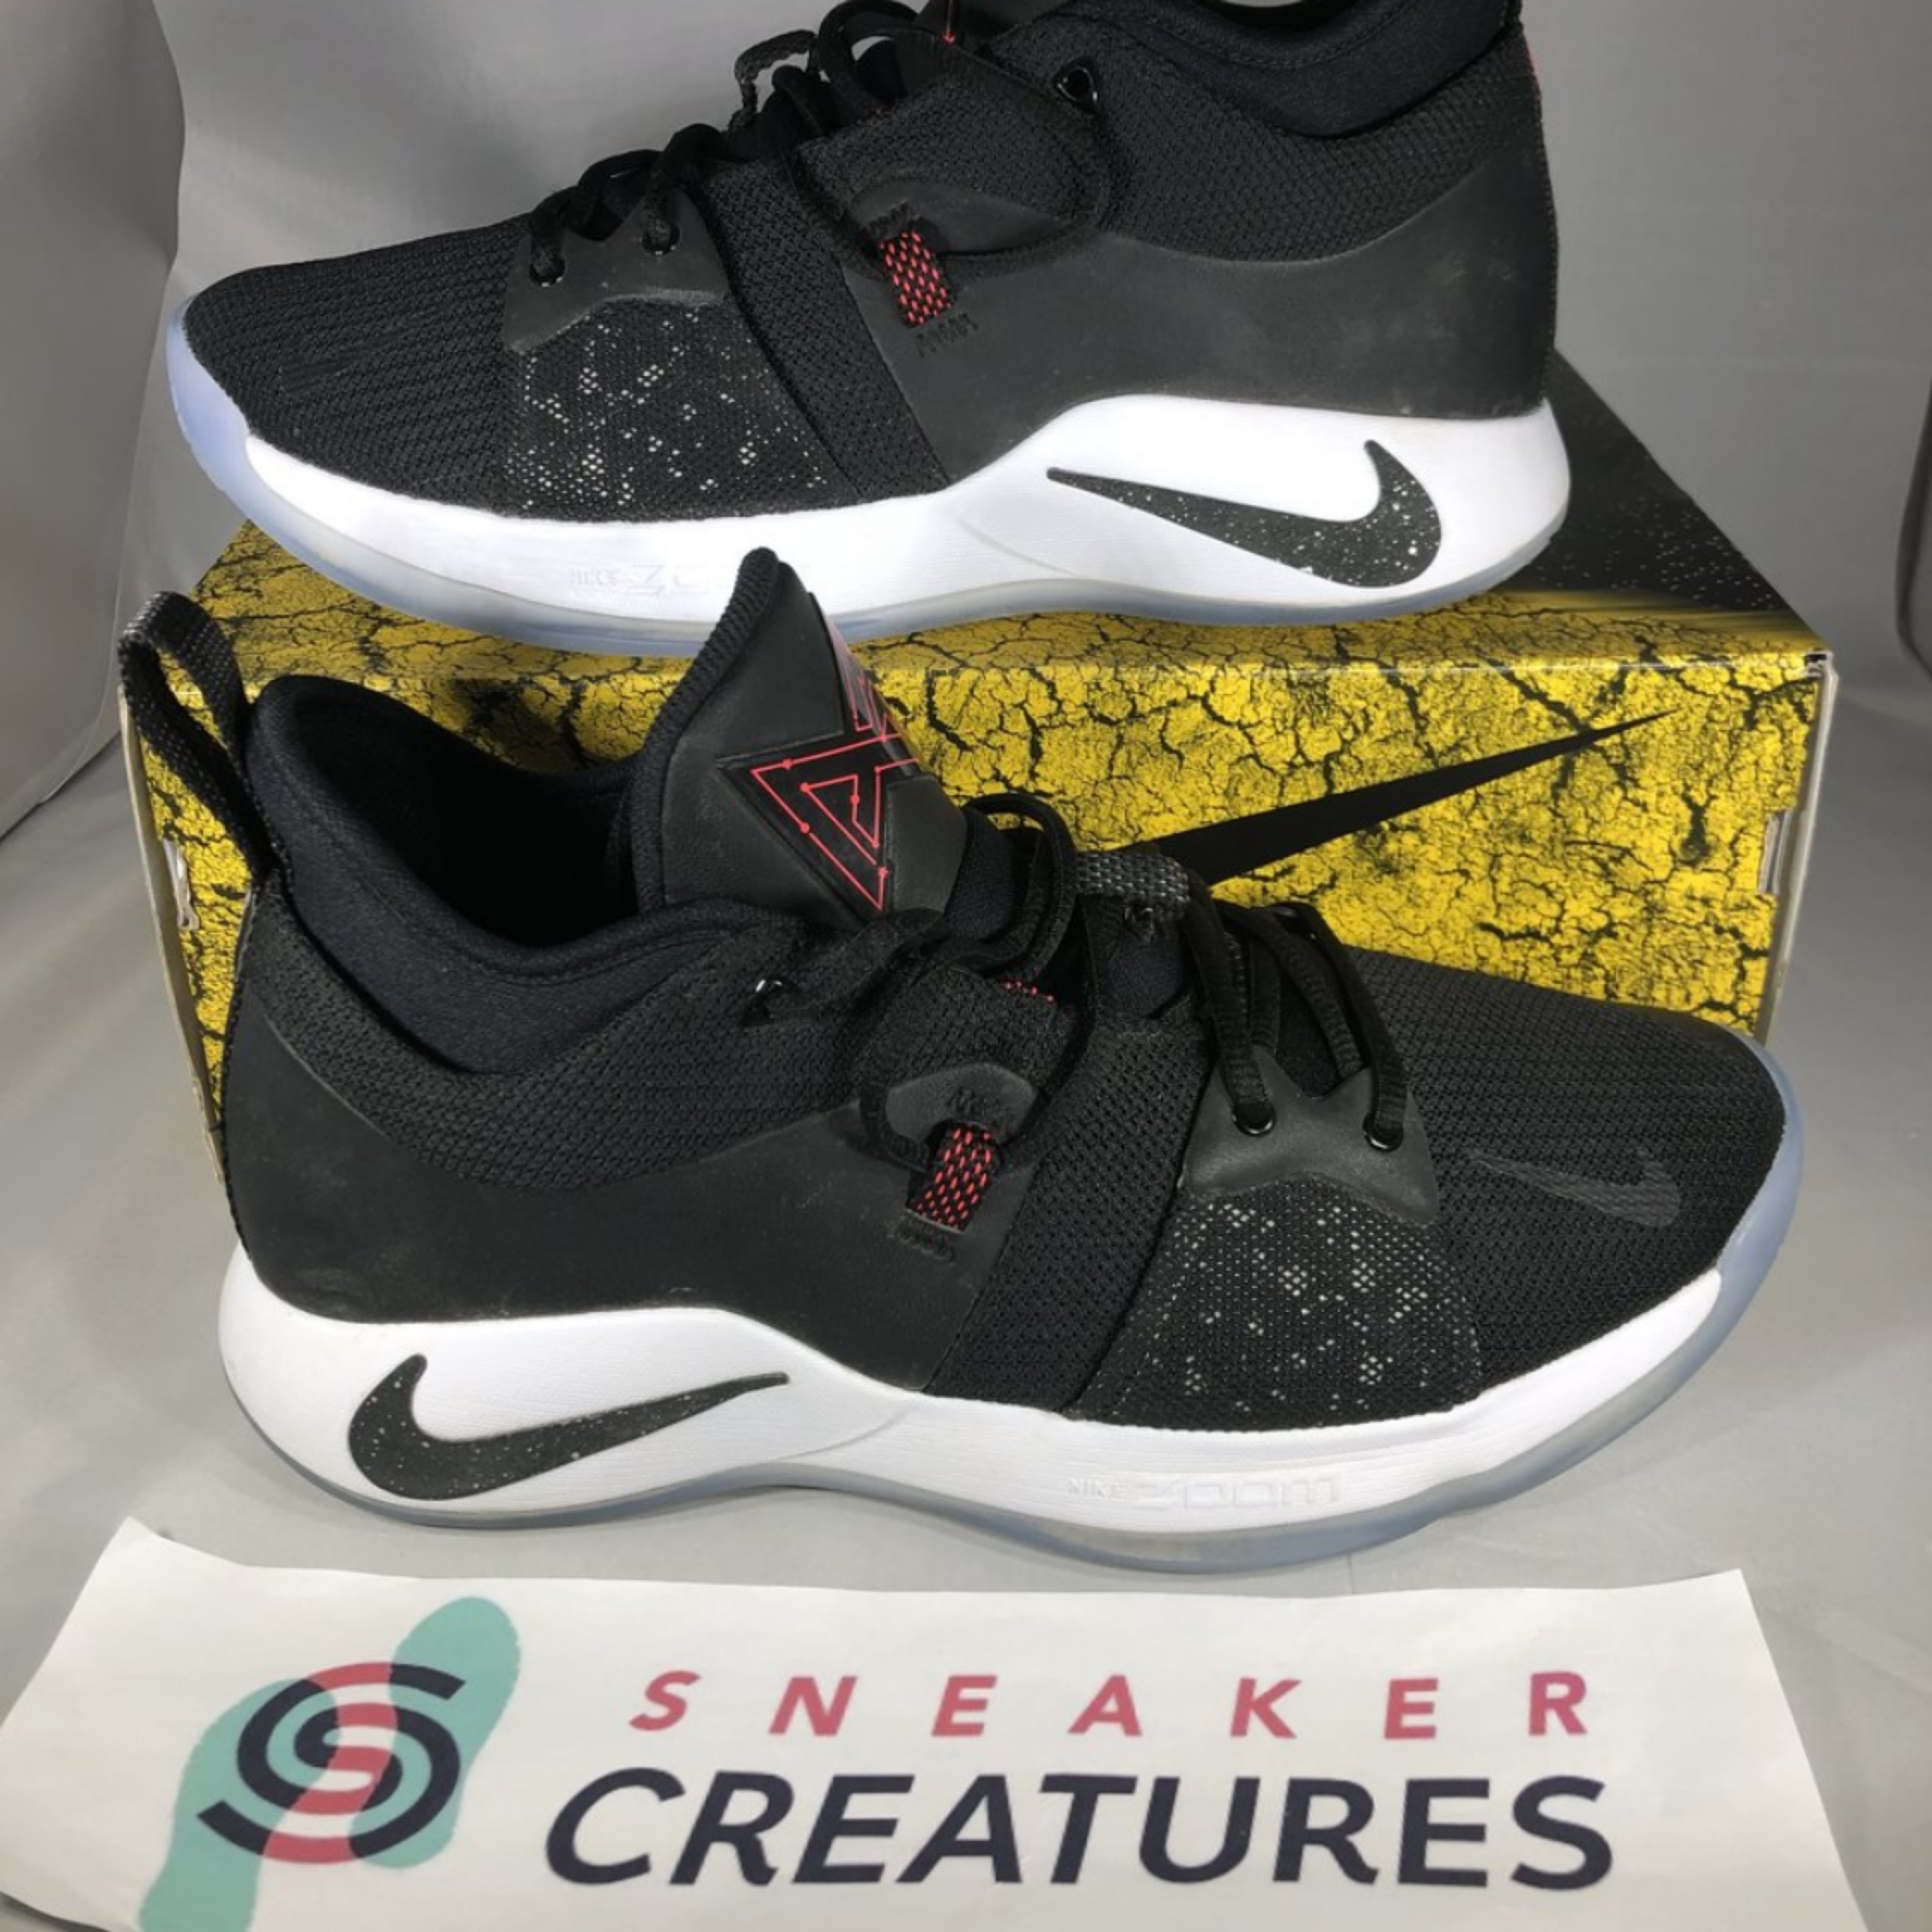 paul george 2 taurus Kevin Durant shoes